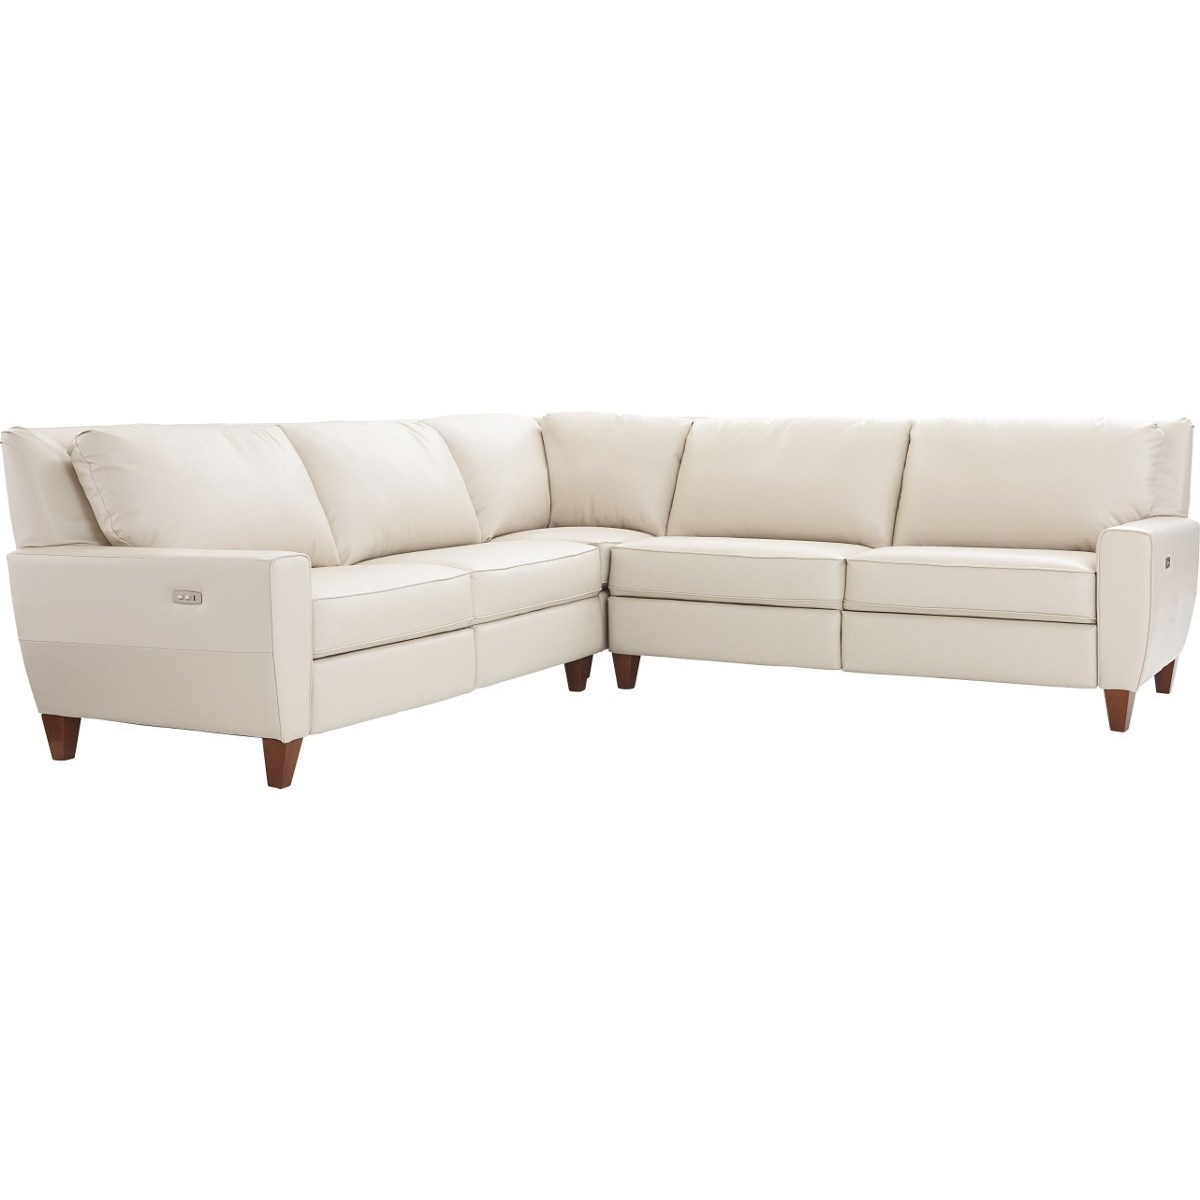 La Z Boy Edie Three Piece Power Reclining Sectional Sofa With Two Reclining Chairs And Two Usb Charging Ports Reid S Furniture Reclining Sectional Sofas